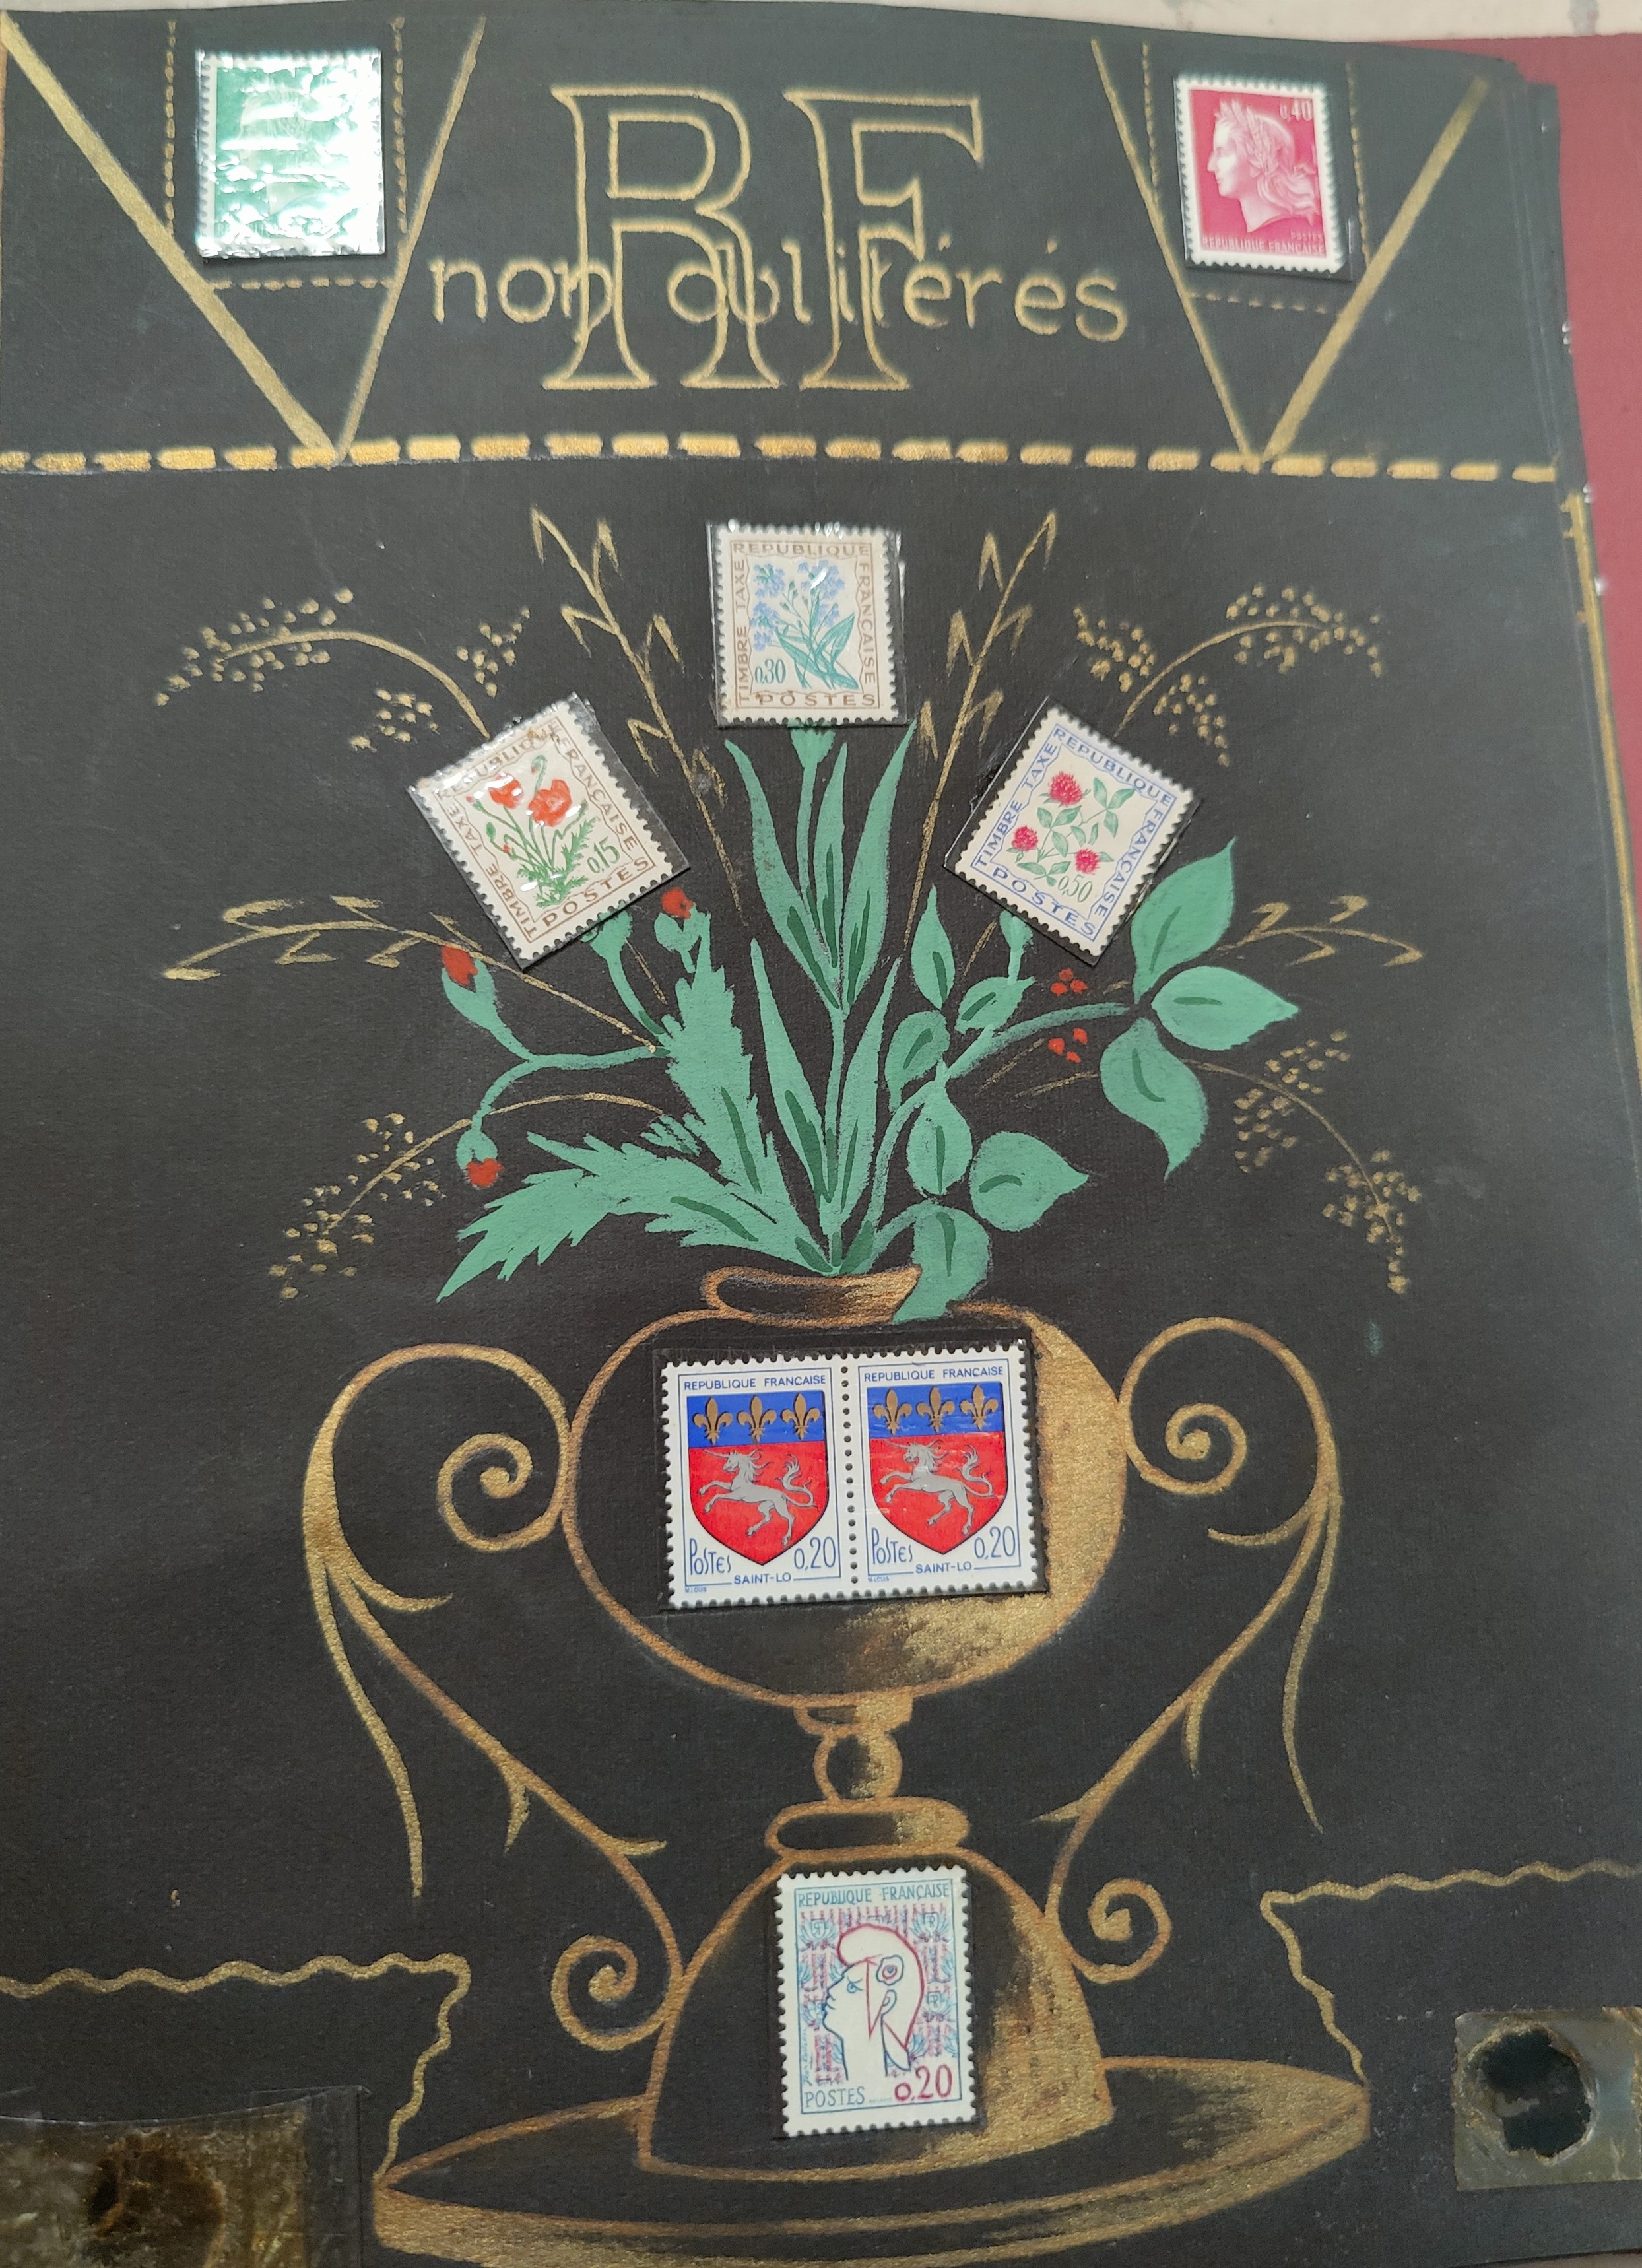 A decorated album with French issues, 3 other albums.